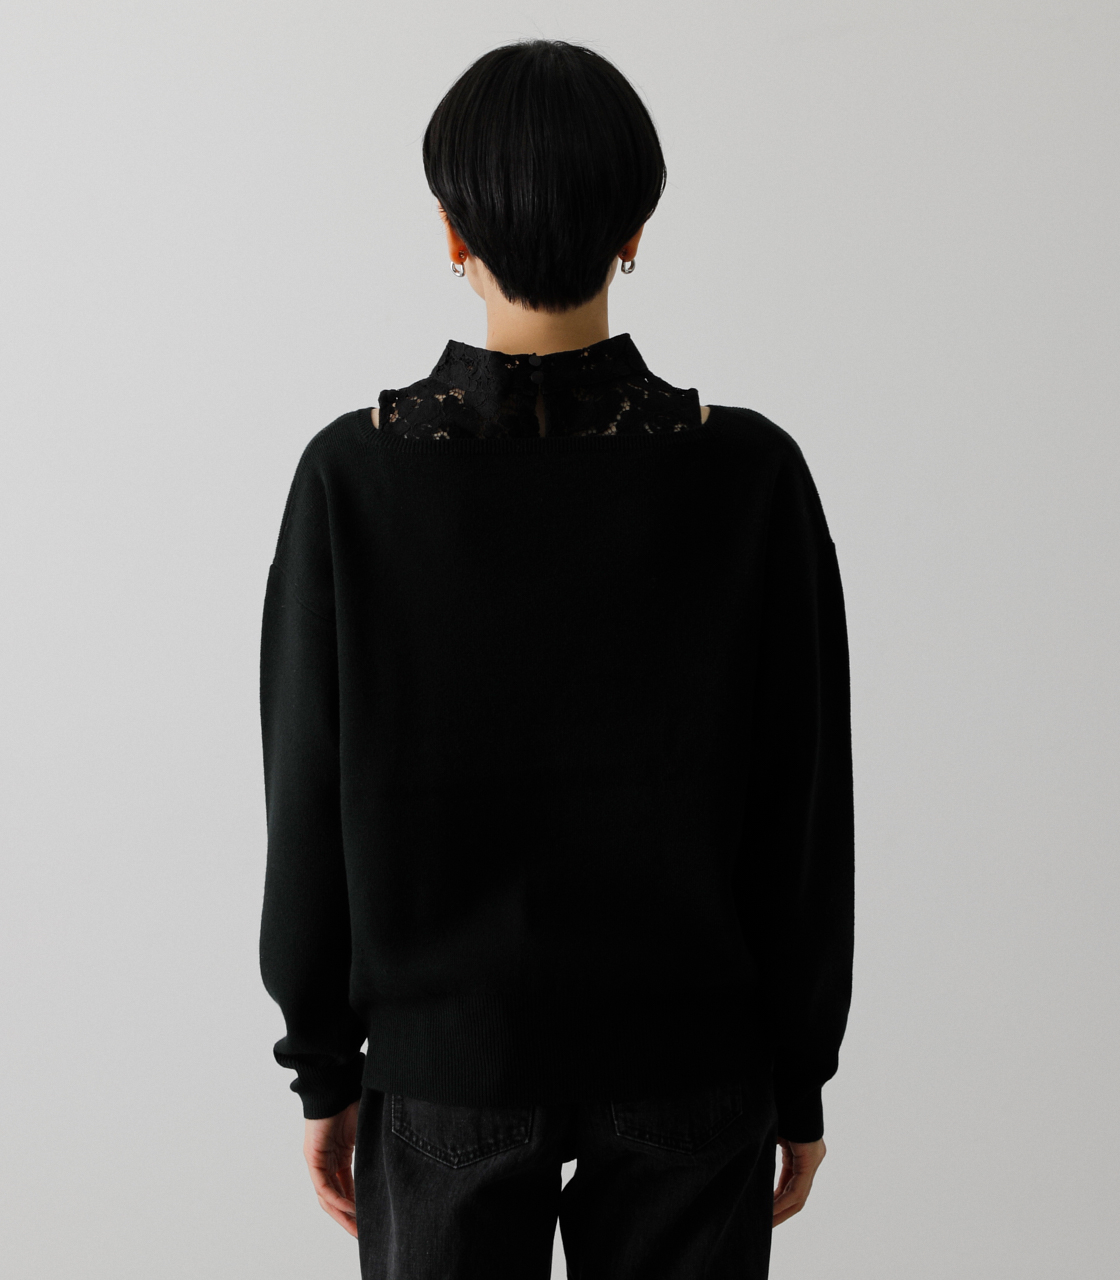 LACE DOCKING CACHE-COEUR TOPS/レースドッキングカシュクールトップス 詳細画像 BLK 7